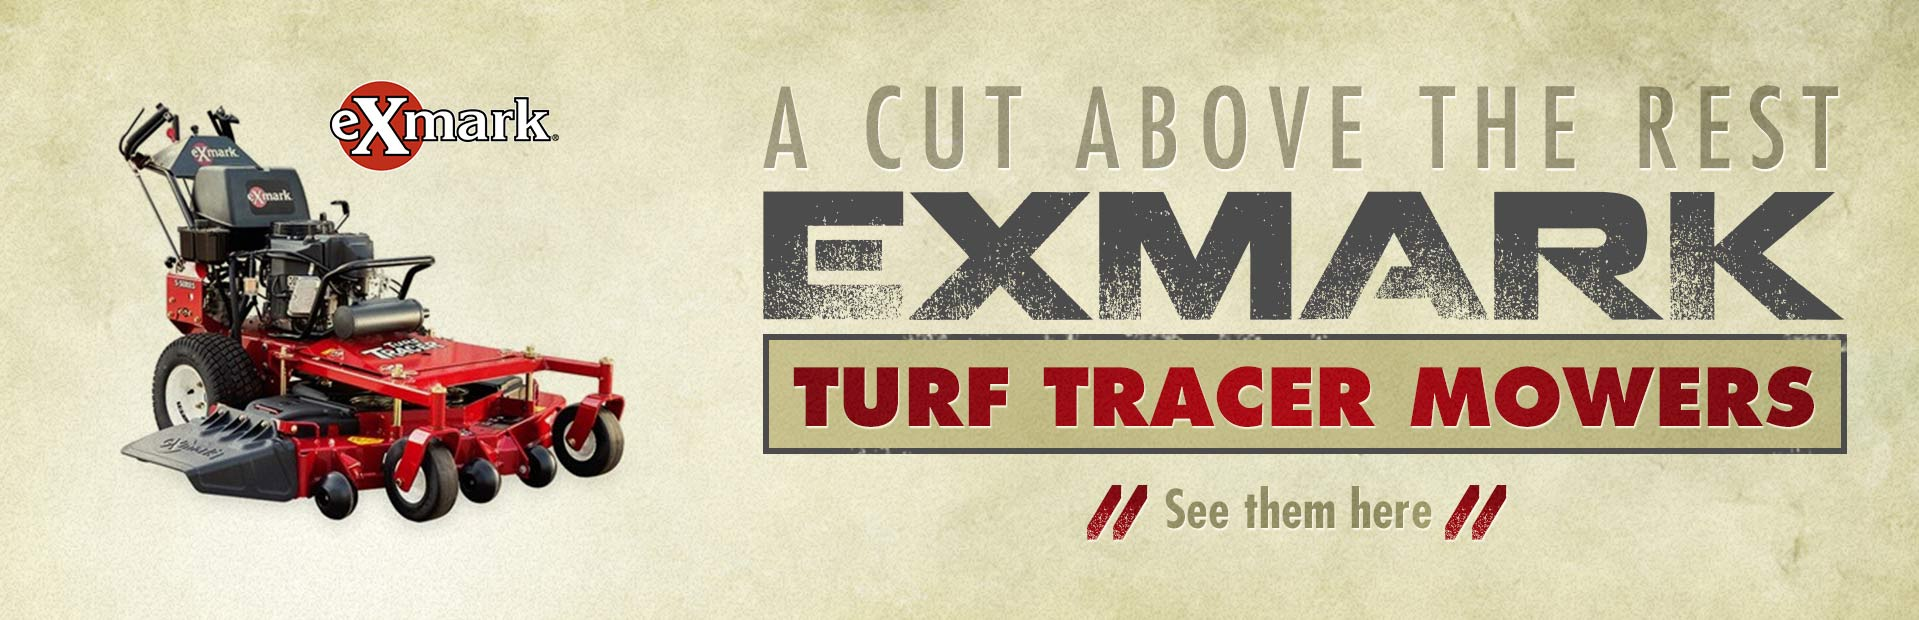 Exmark Turf Tracer Mowers: Click here to view the models.